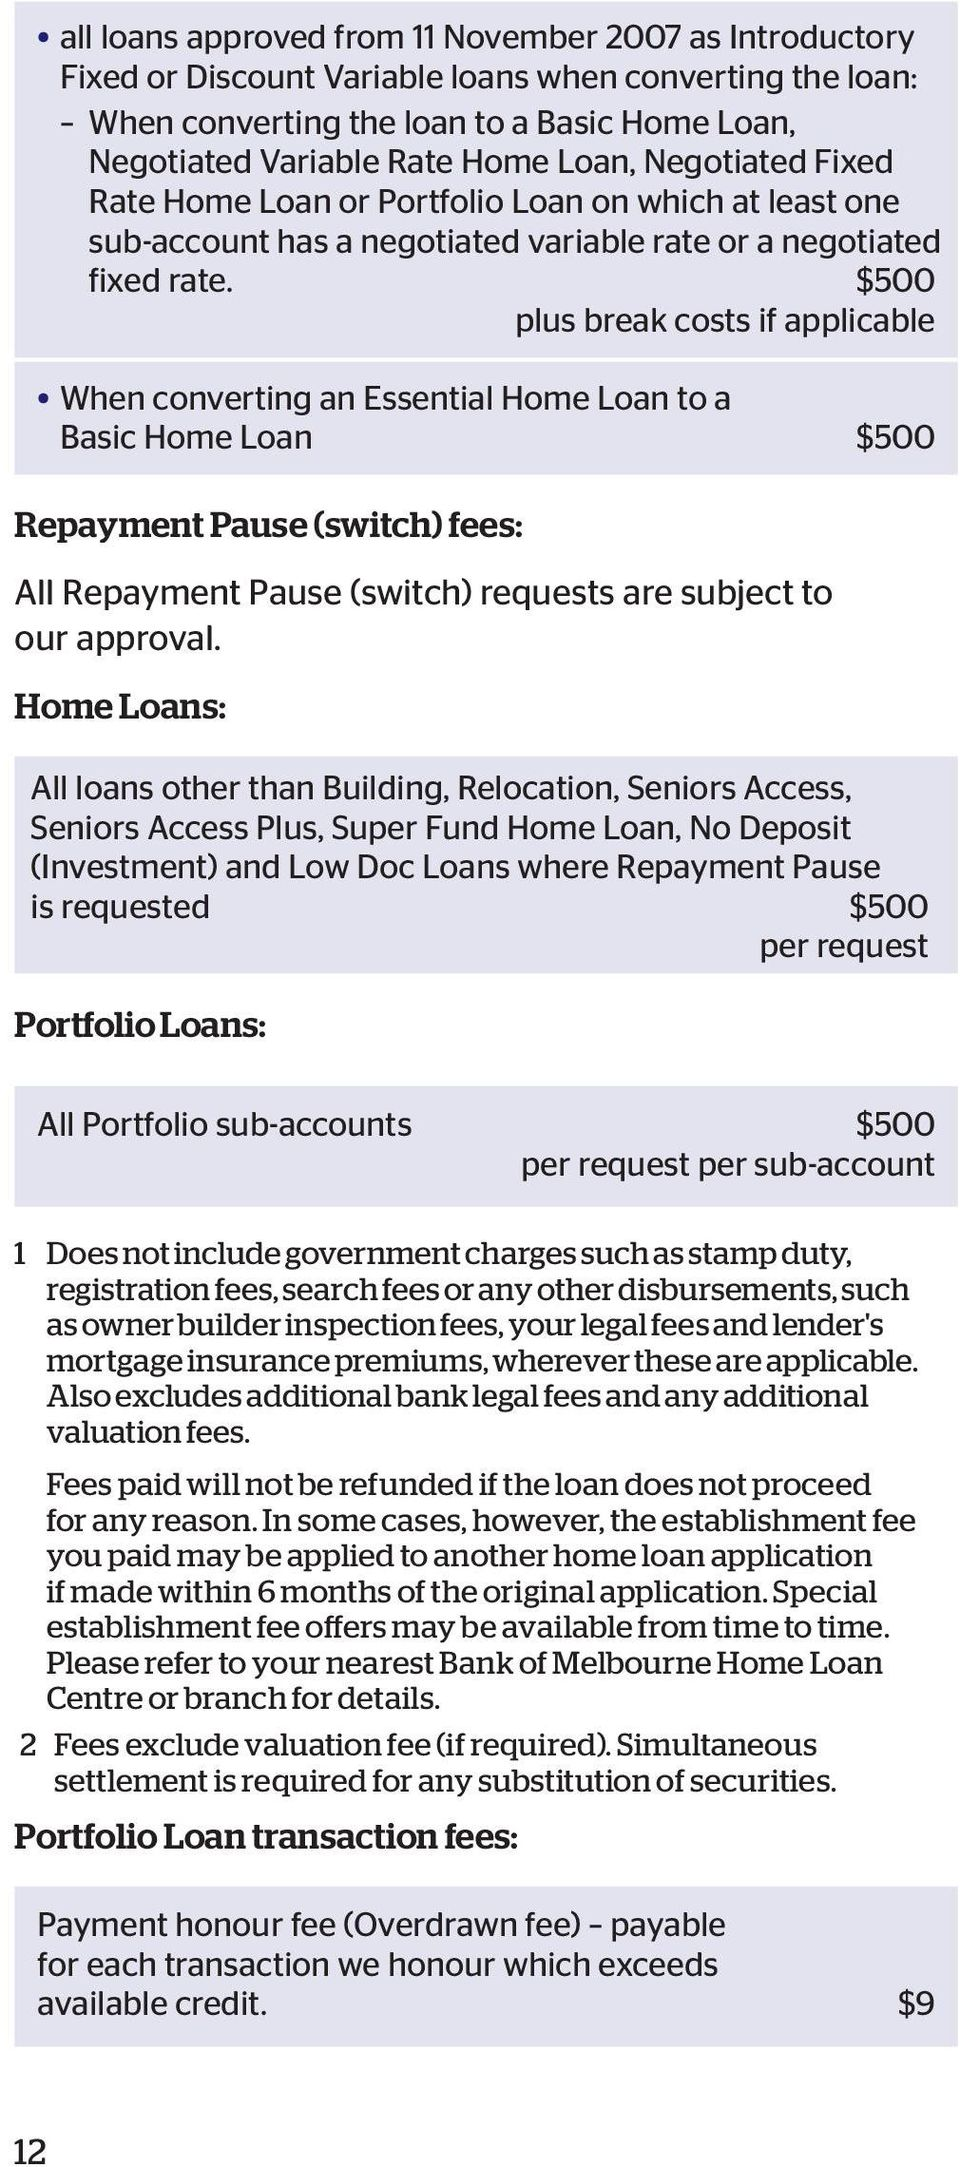 $500 plus break costs if applicable When converting an Essential Home Loan to a Basic Home Loan $500 Repayment Pause (switch) fees: All Repayment Pause (switch) requests are subject to our approval.